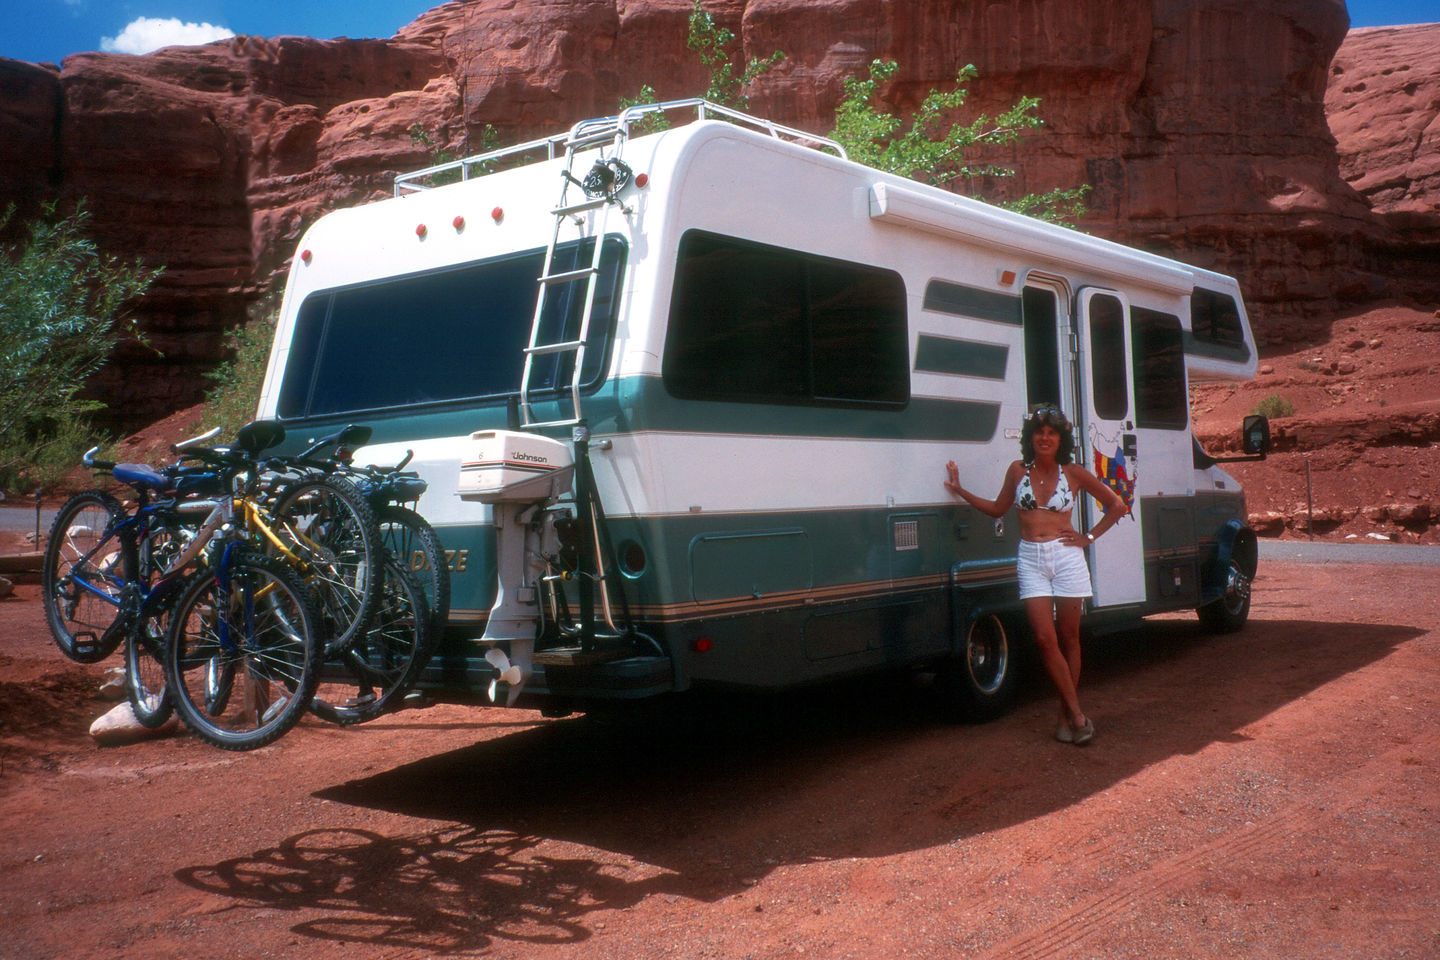 Lolo and the RV at Goulding's Campground